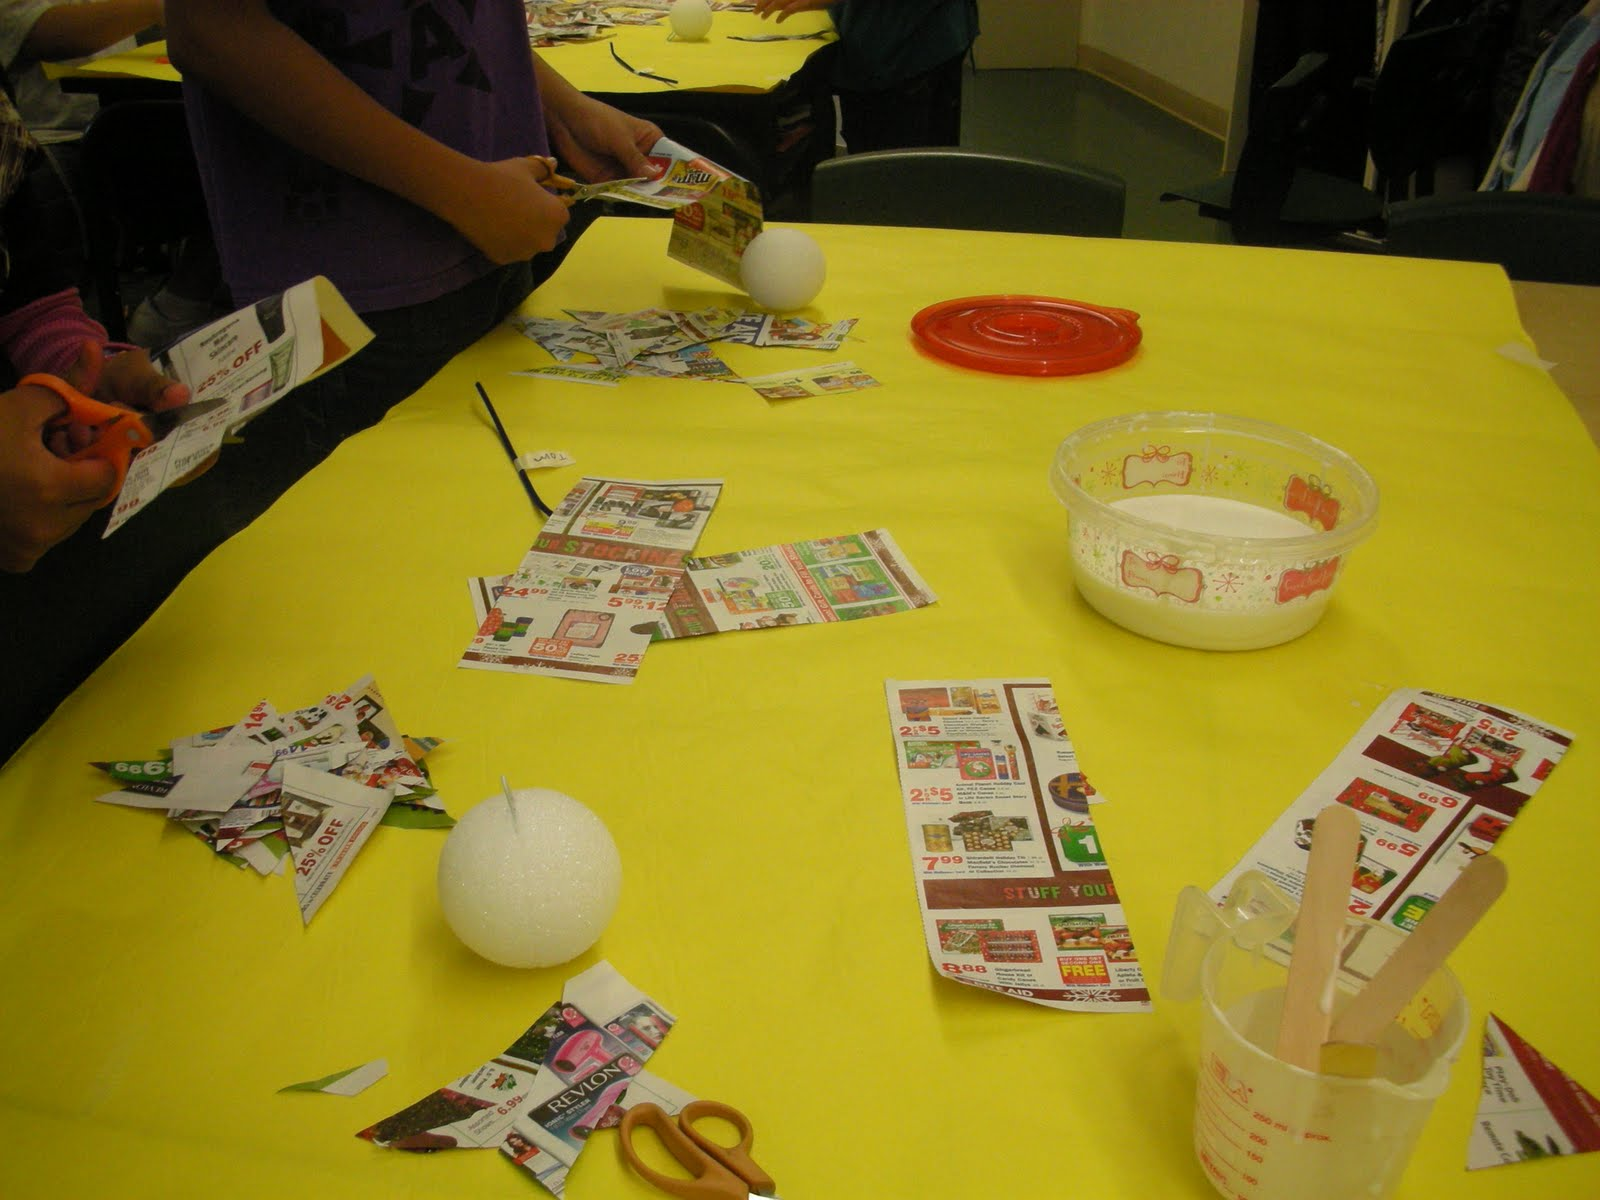 Students rock the Simple Gifts globe project | word.